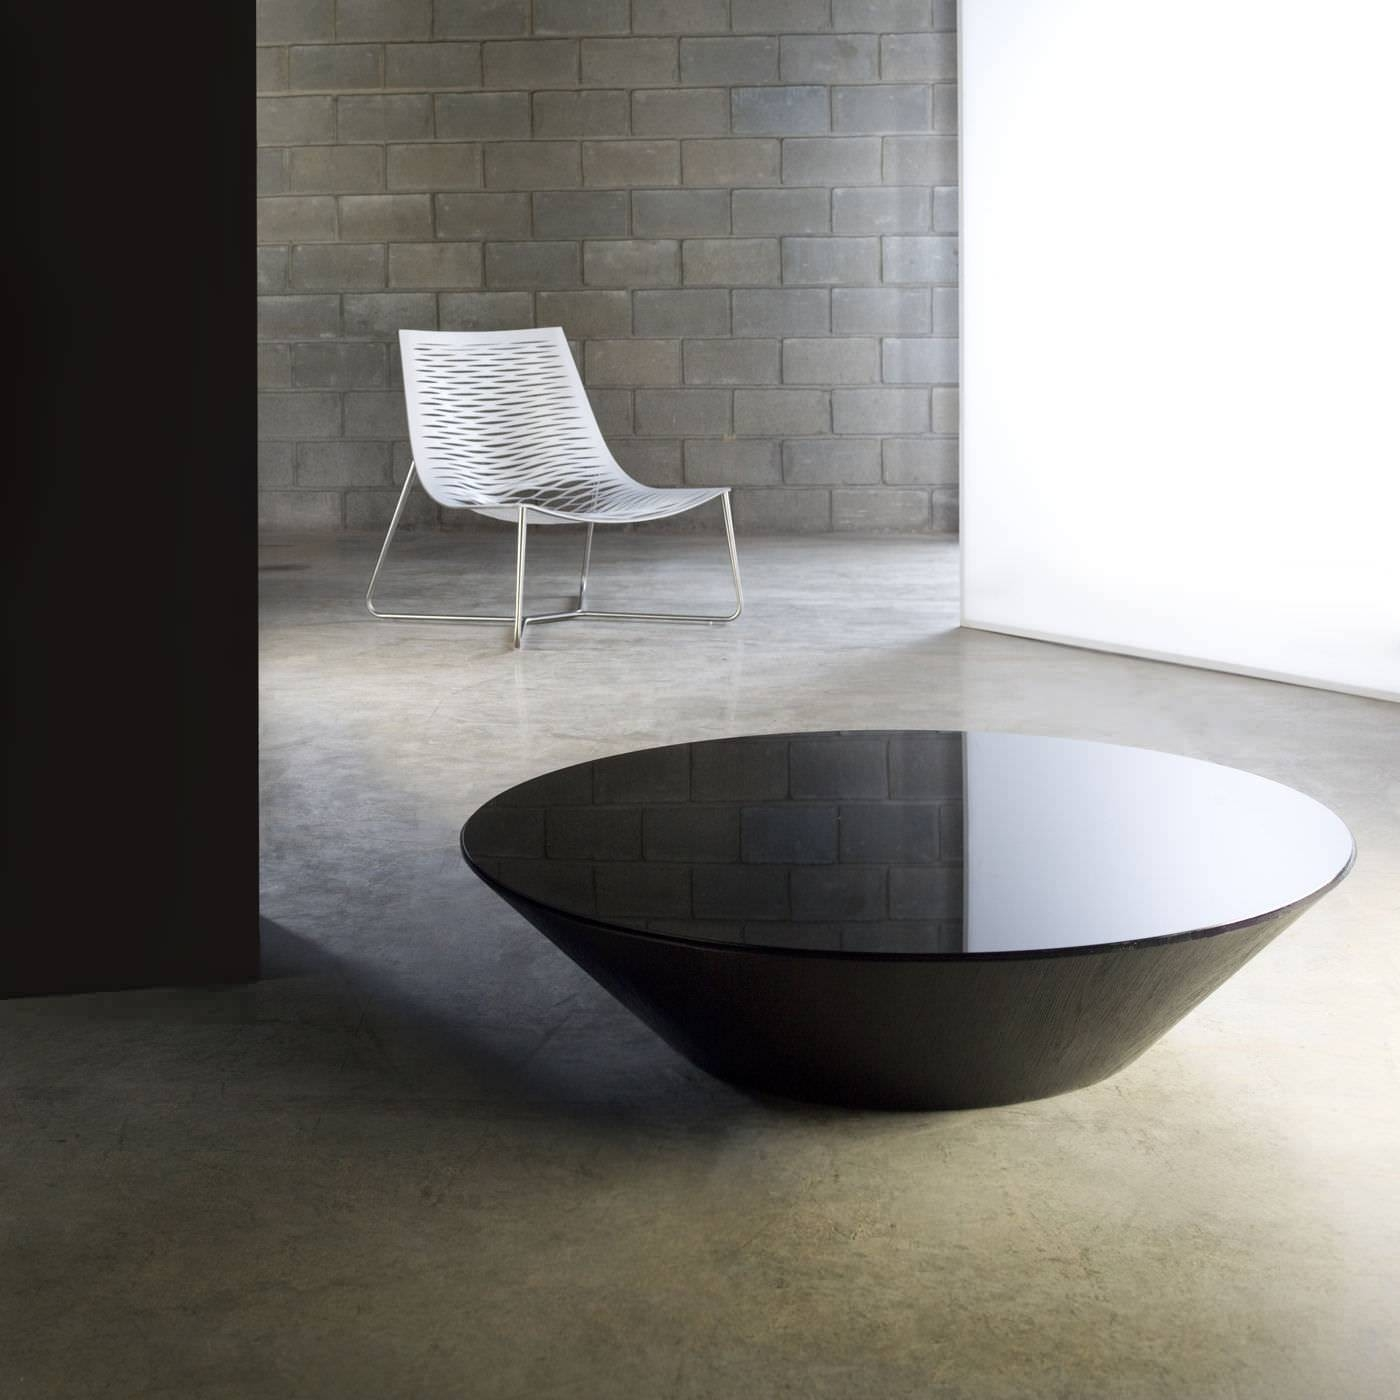 Contemporary Coffee Table / Glass / Round – Dorset – Modloft In Contemporary Round Coffee Tables (View 4 of 15)